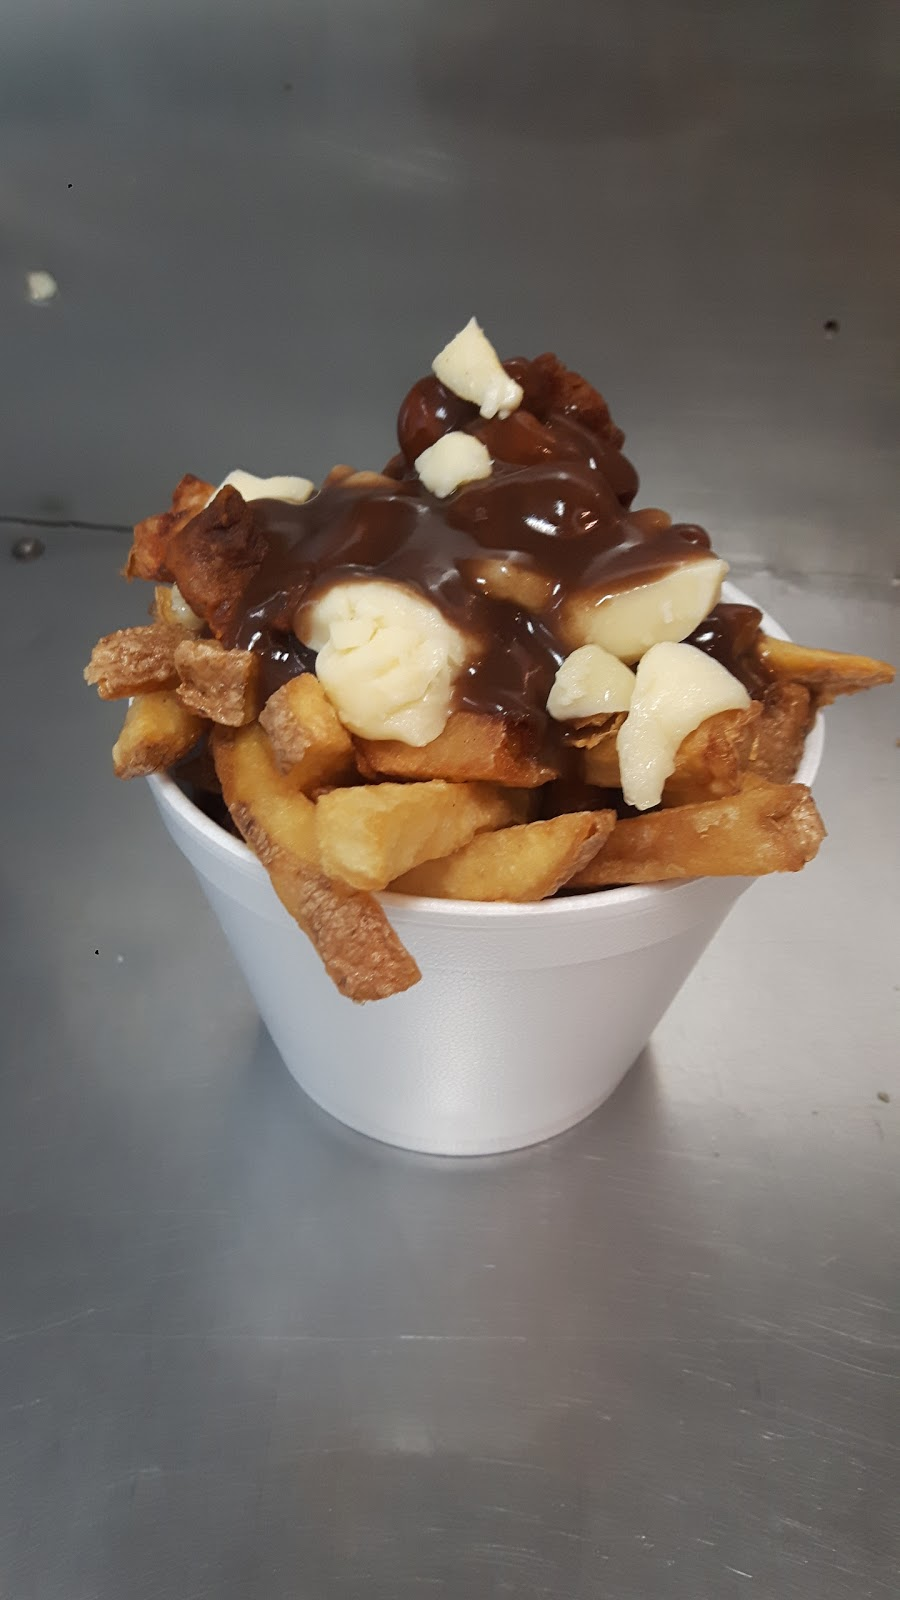 The Fry Guy | restaurant | Horseshoe Valley Rd W, Anten Mills, ON L0L 1Y0, Canada | 7057265207 OR +1 705-726-5207